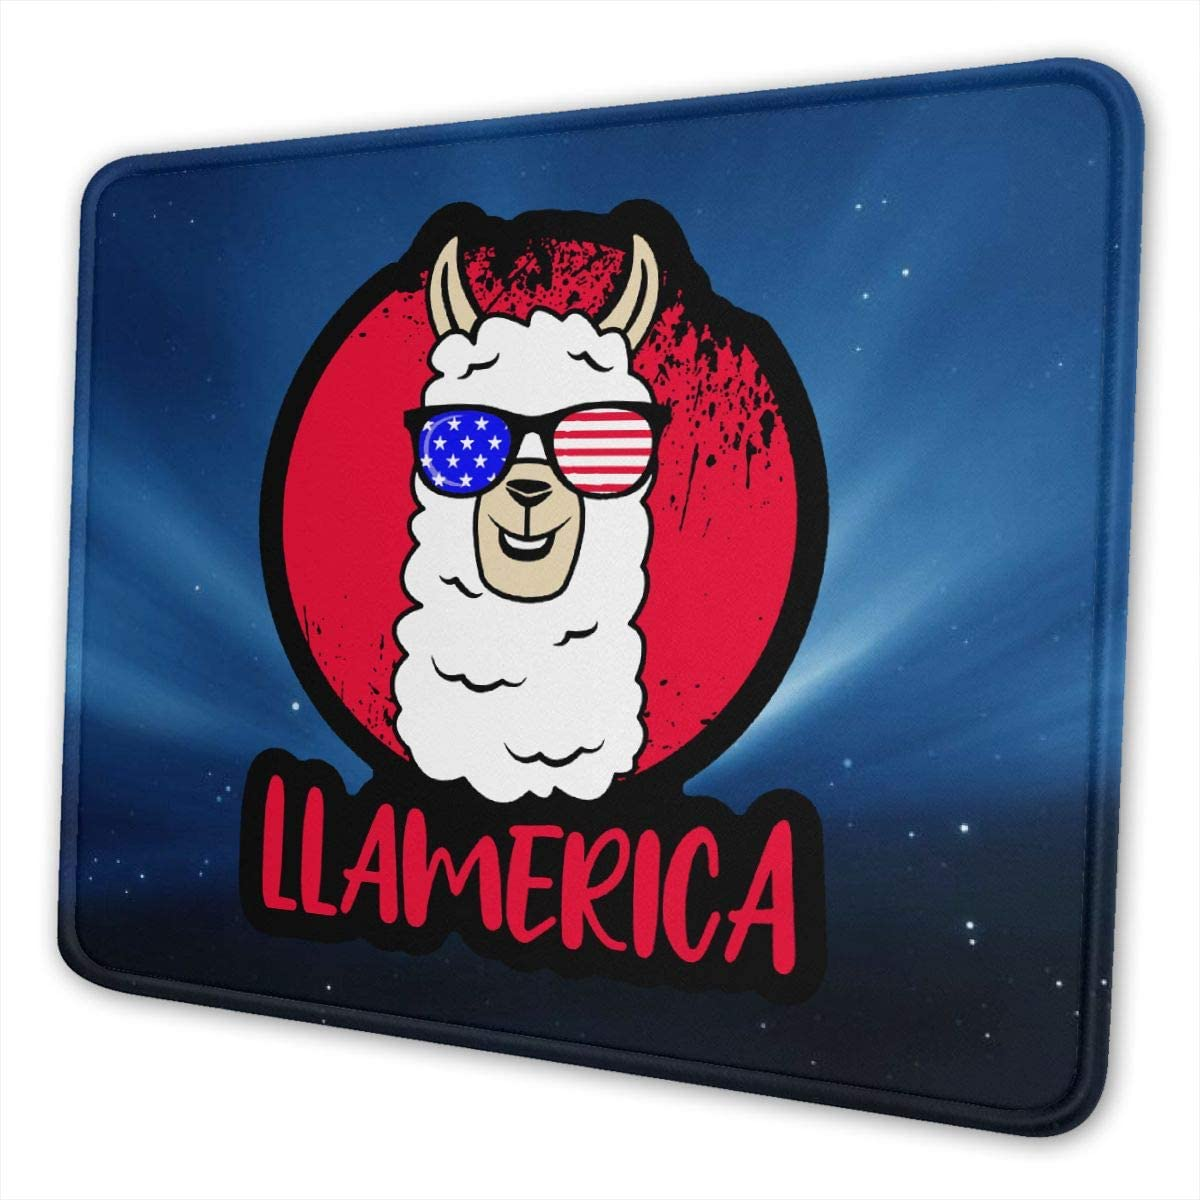 USA Memorial Day4 Gaming Mouse Pads Non-Slip Rubber Base Square Mat for Desktops Computer Laptops